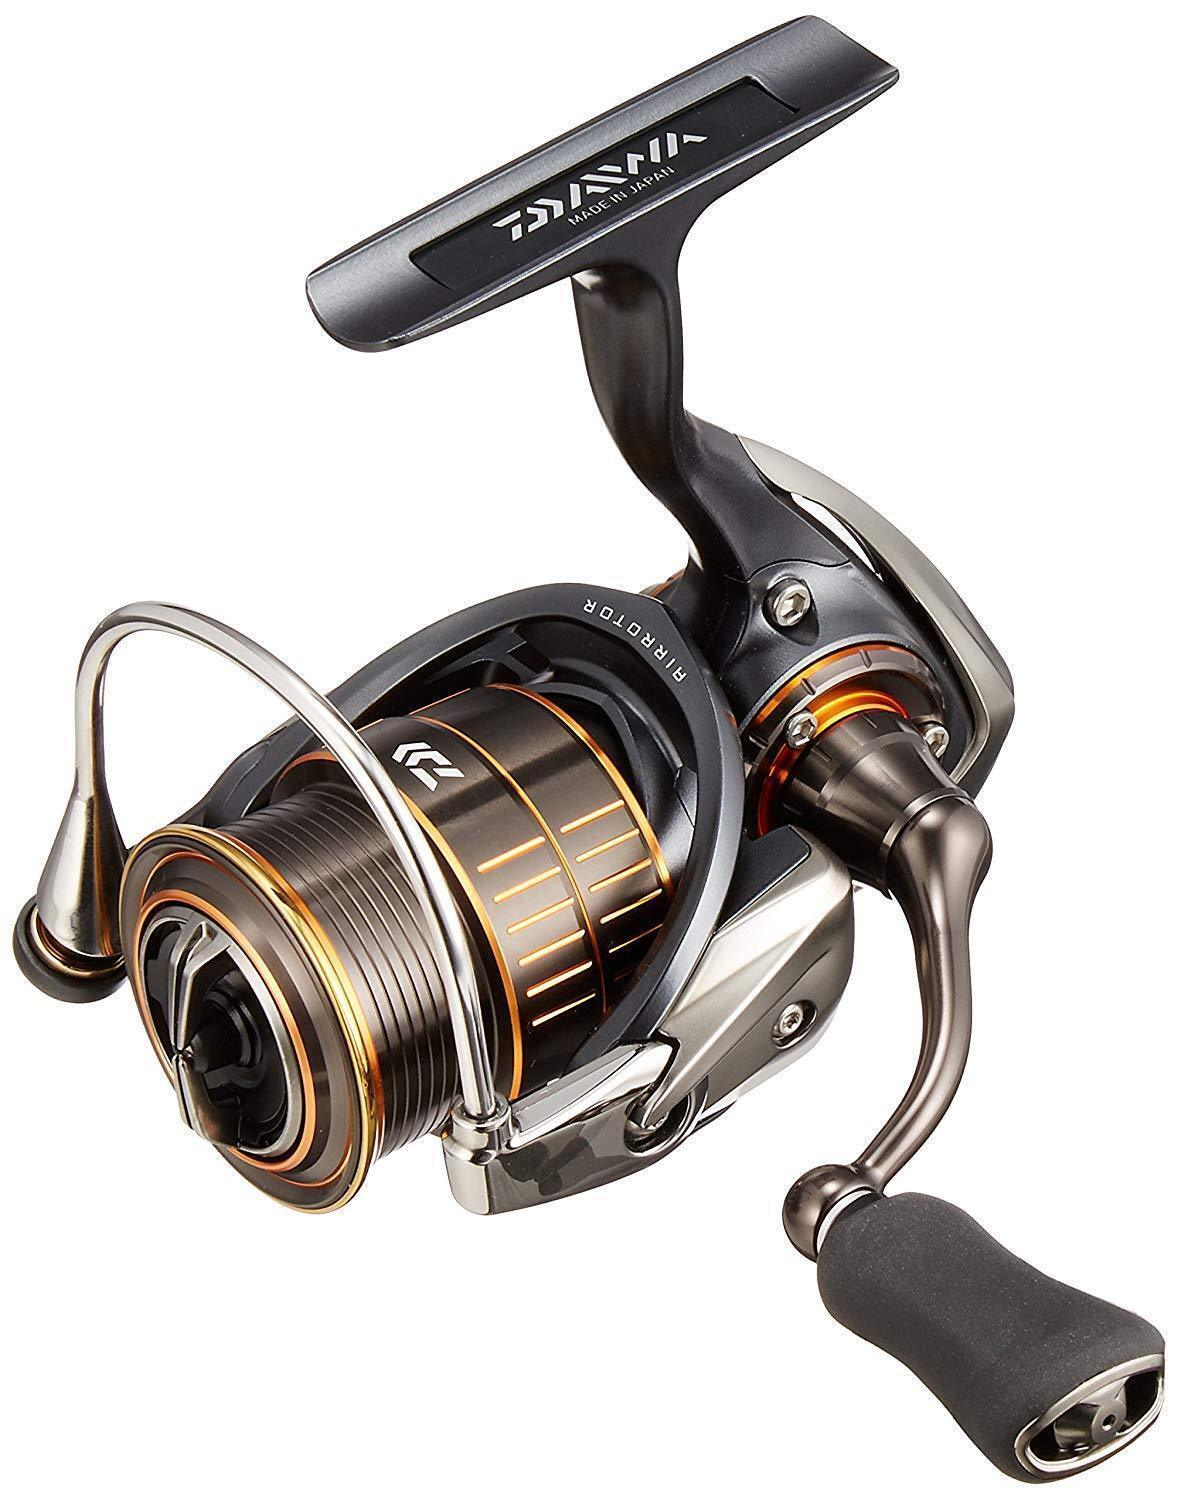 Daiwa 17 PRESSO LTD 1025 Fishing REEL Japan New